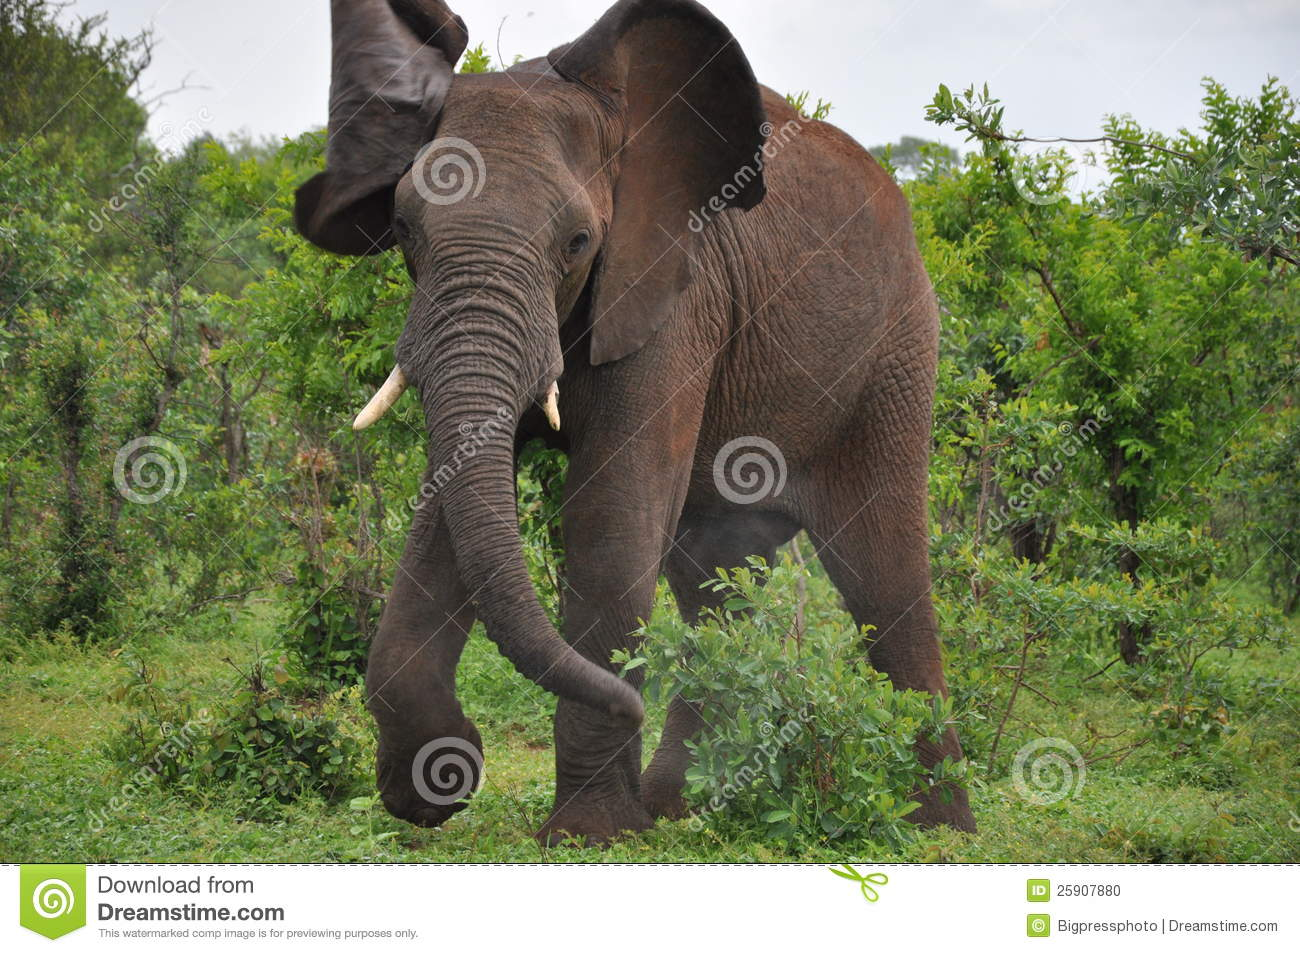 An angry aggressive African elephant in the wild charges danger ...